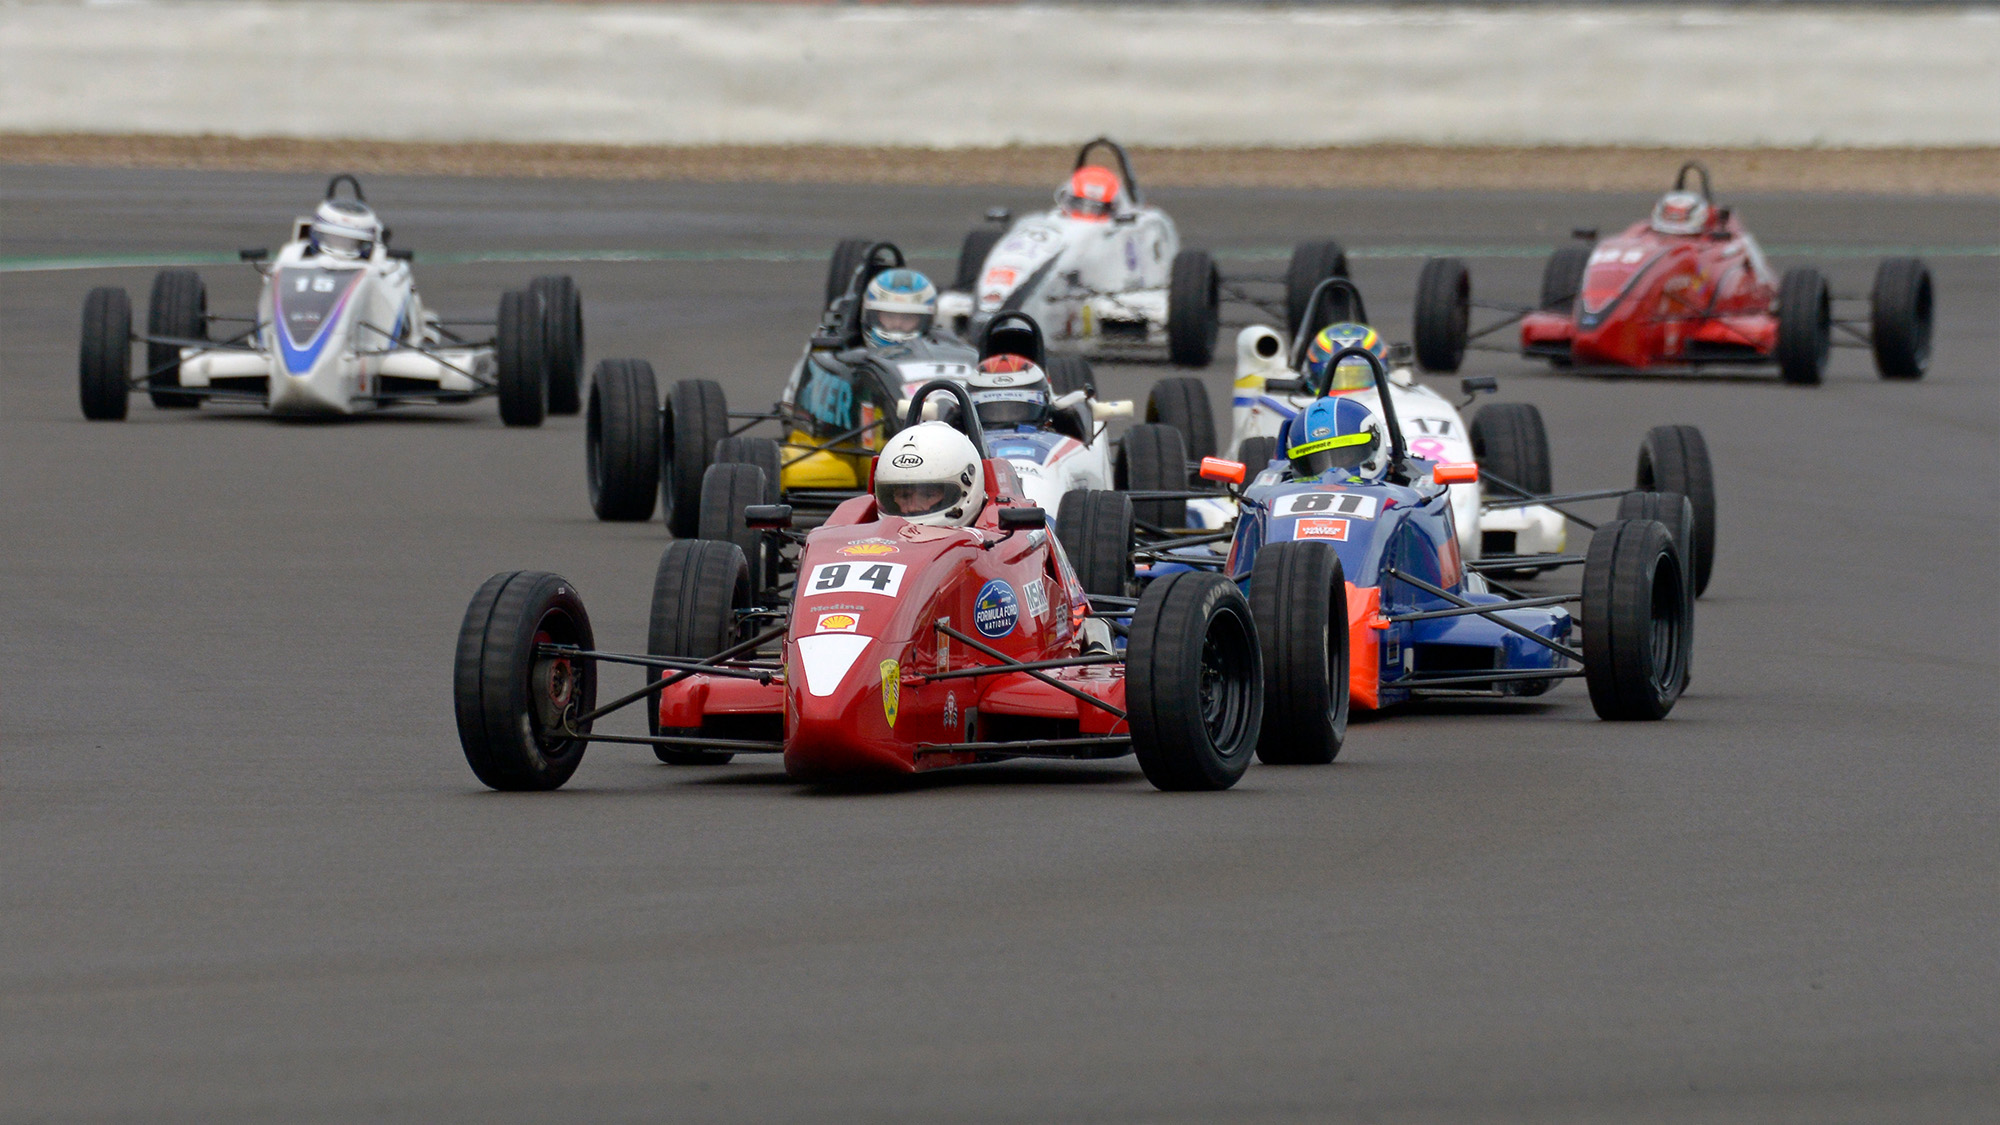 2020 Walter Hayes Trophy at Silverstone